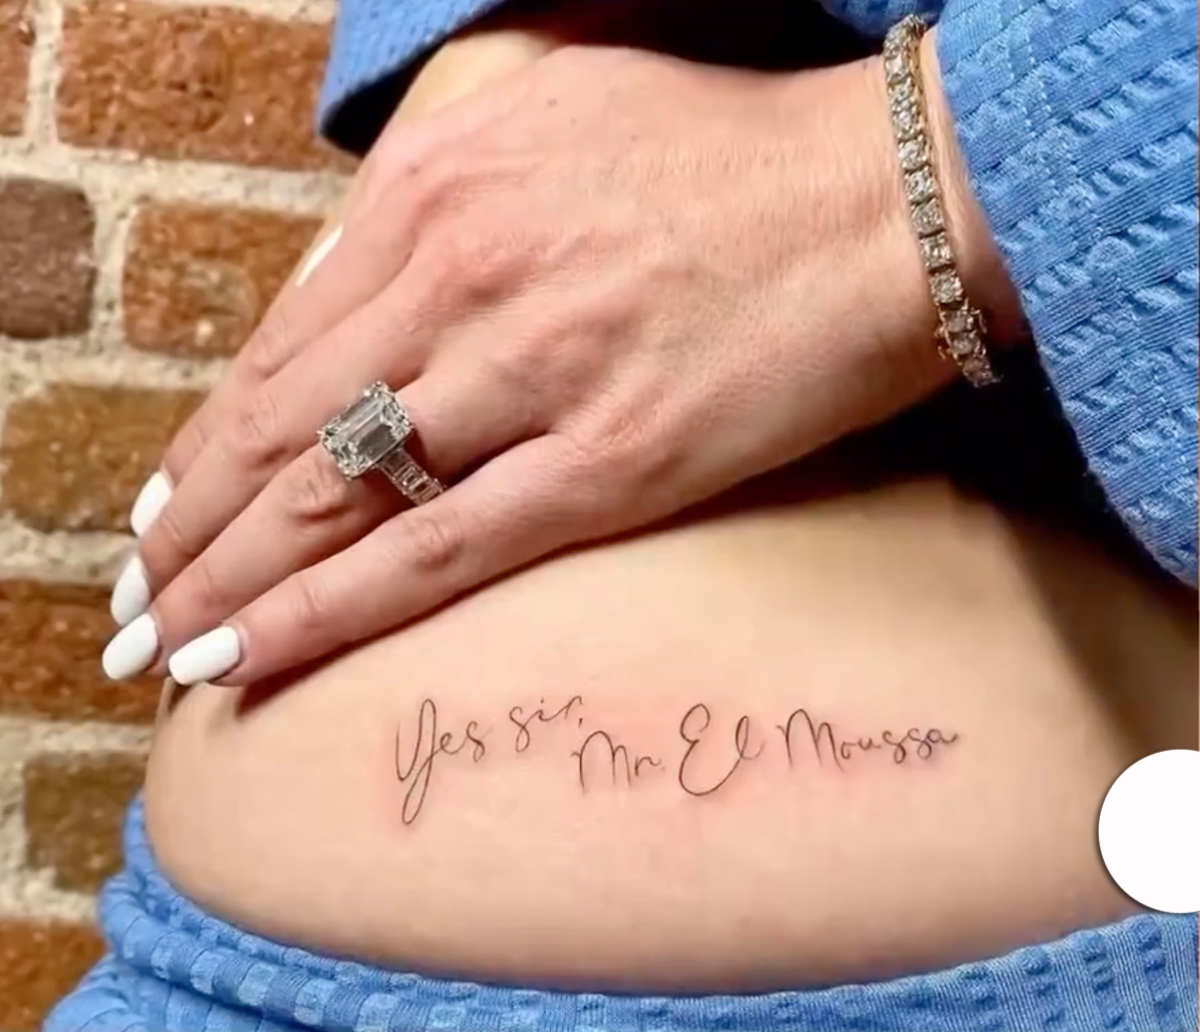 Heather Rae Young Reveals New Butt Tattoo